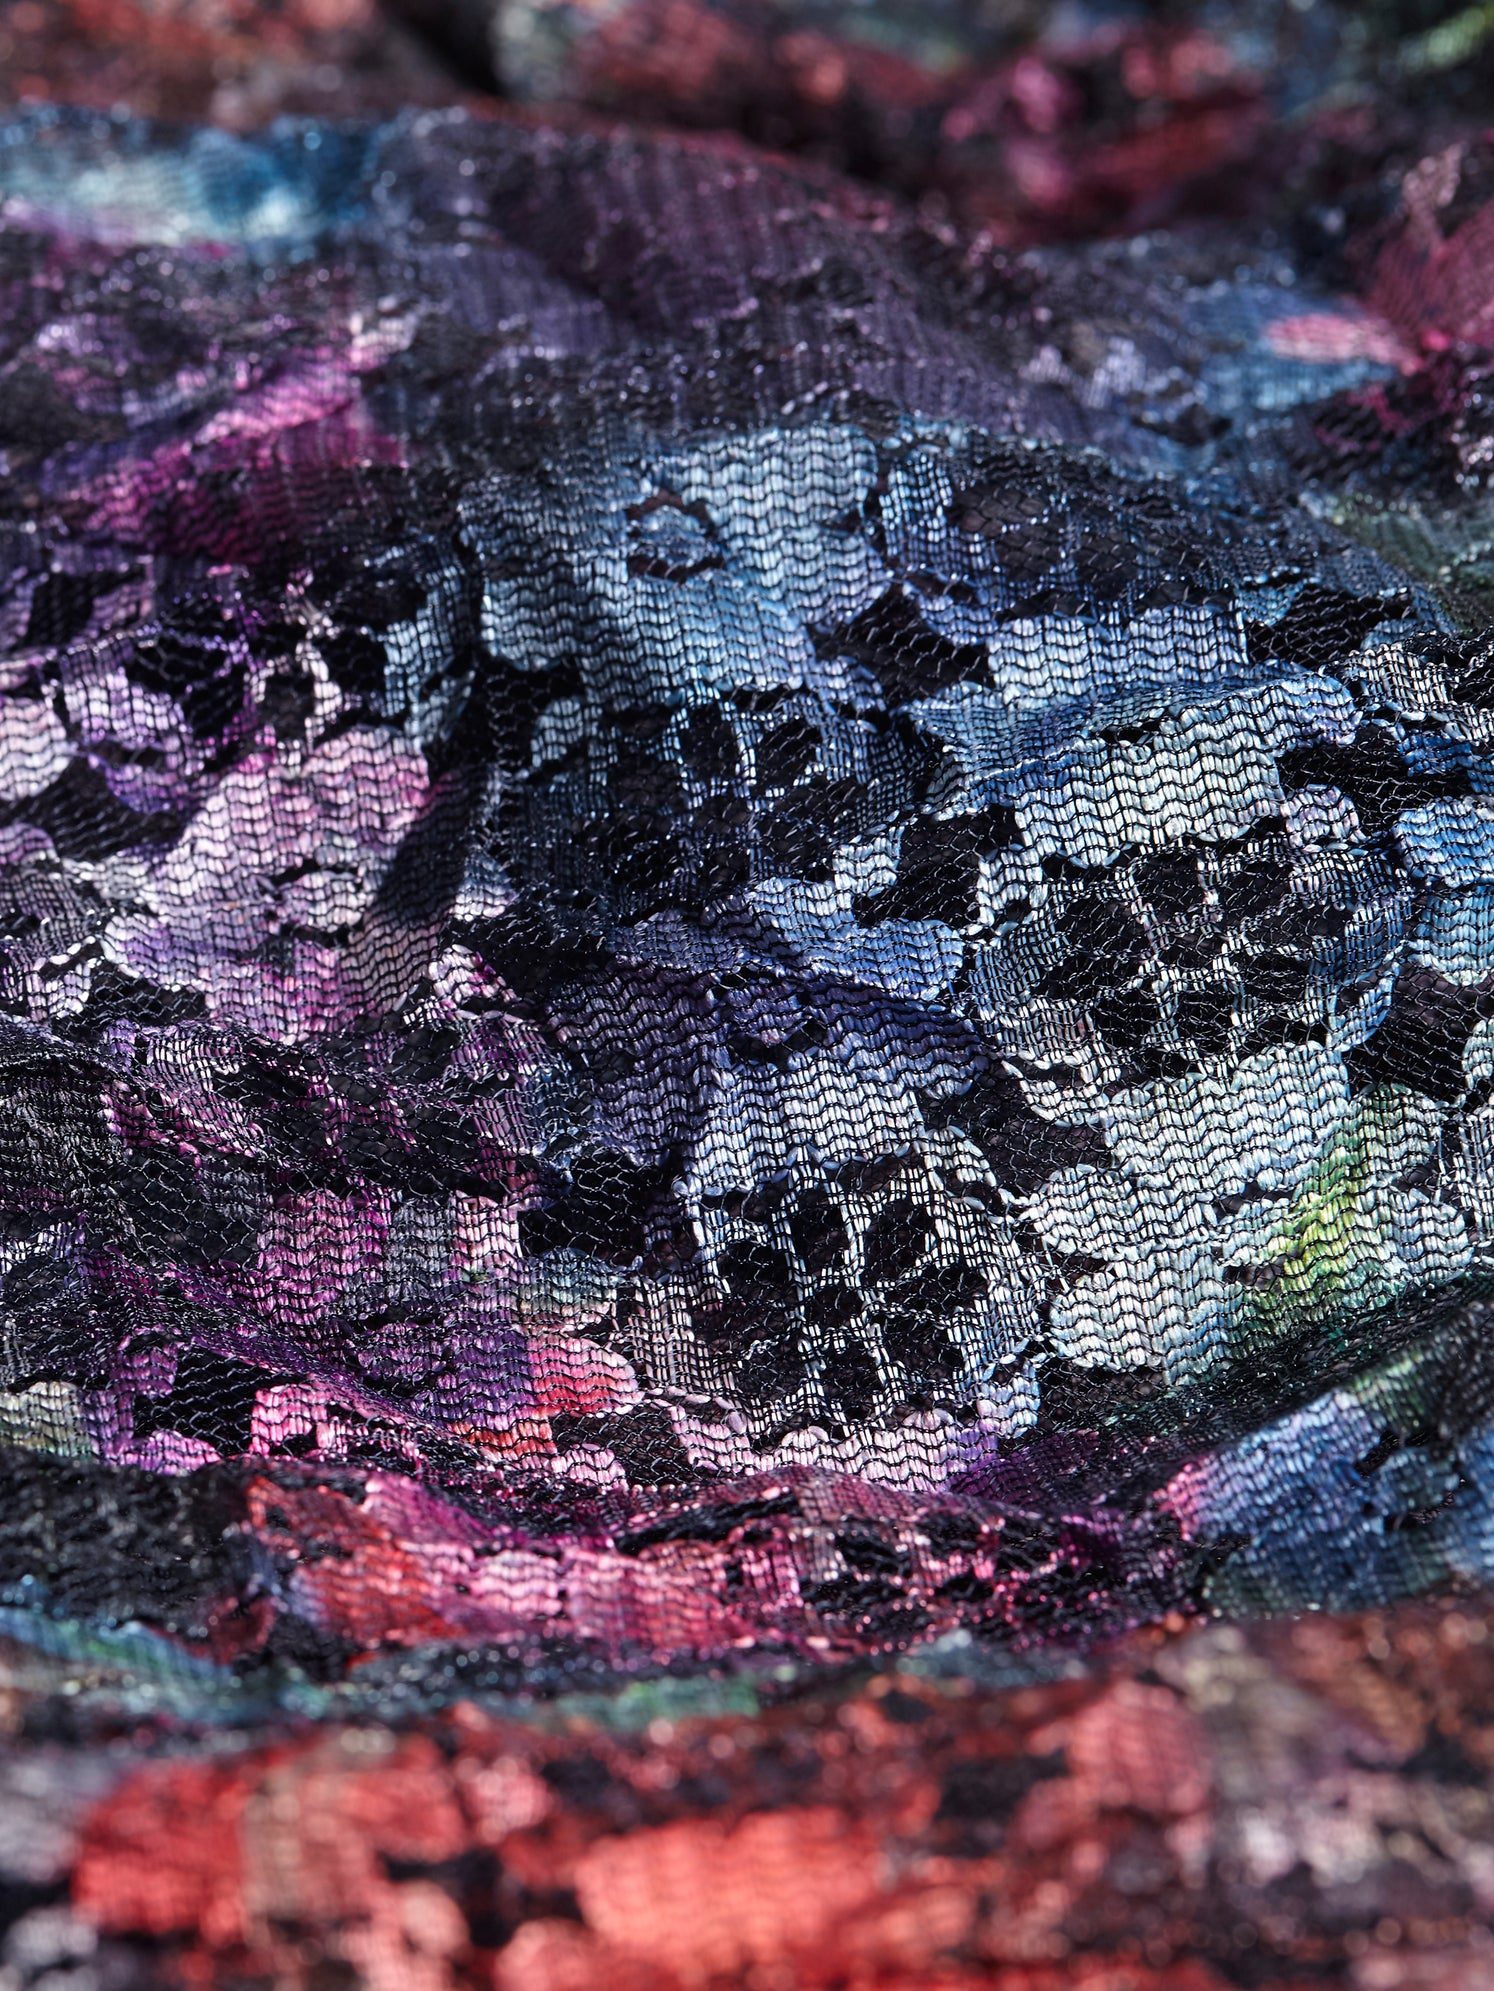 Tie-dye printed lace fabric